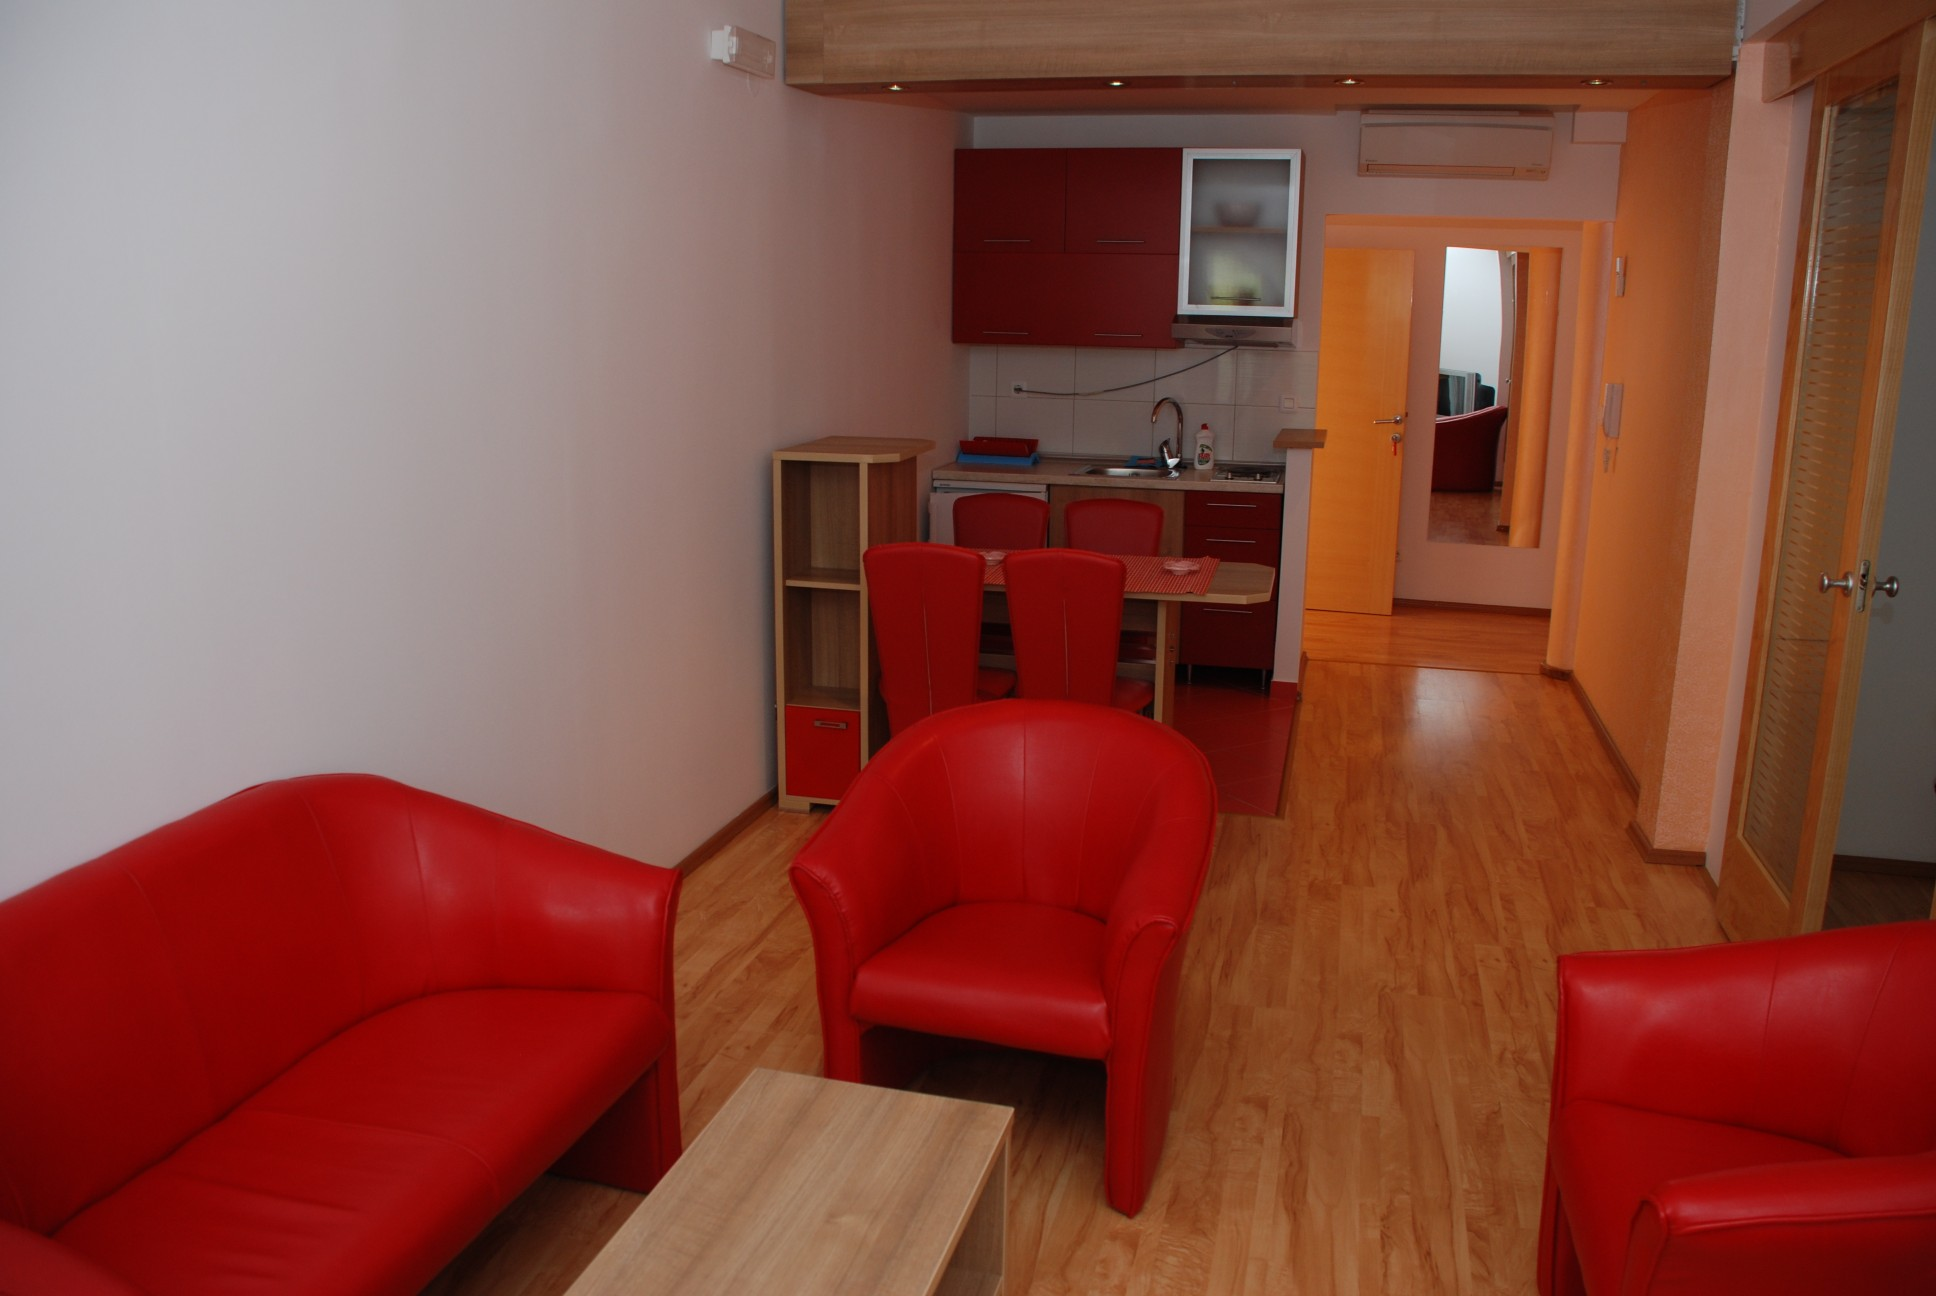 Red apartment livingroom Springs apartments Montenegro